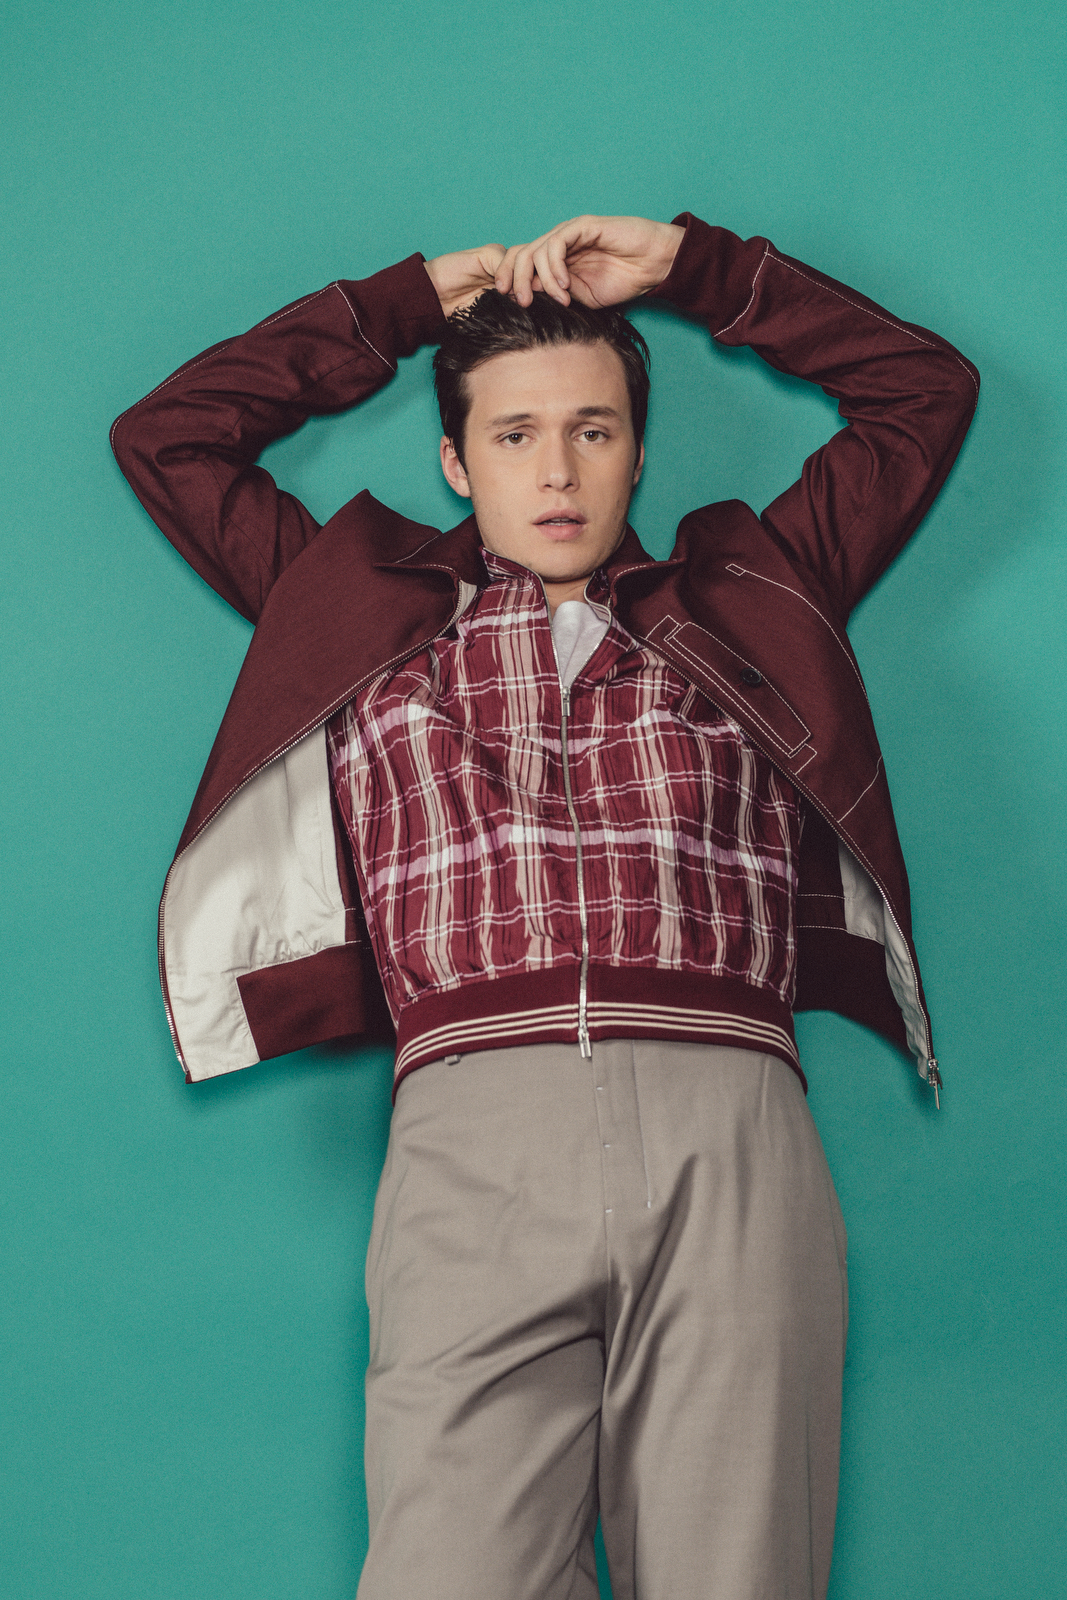 gq_nickrobinson07.jpg